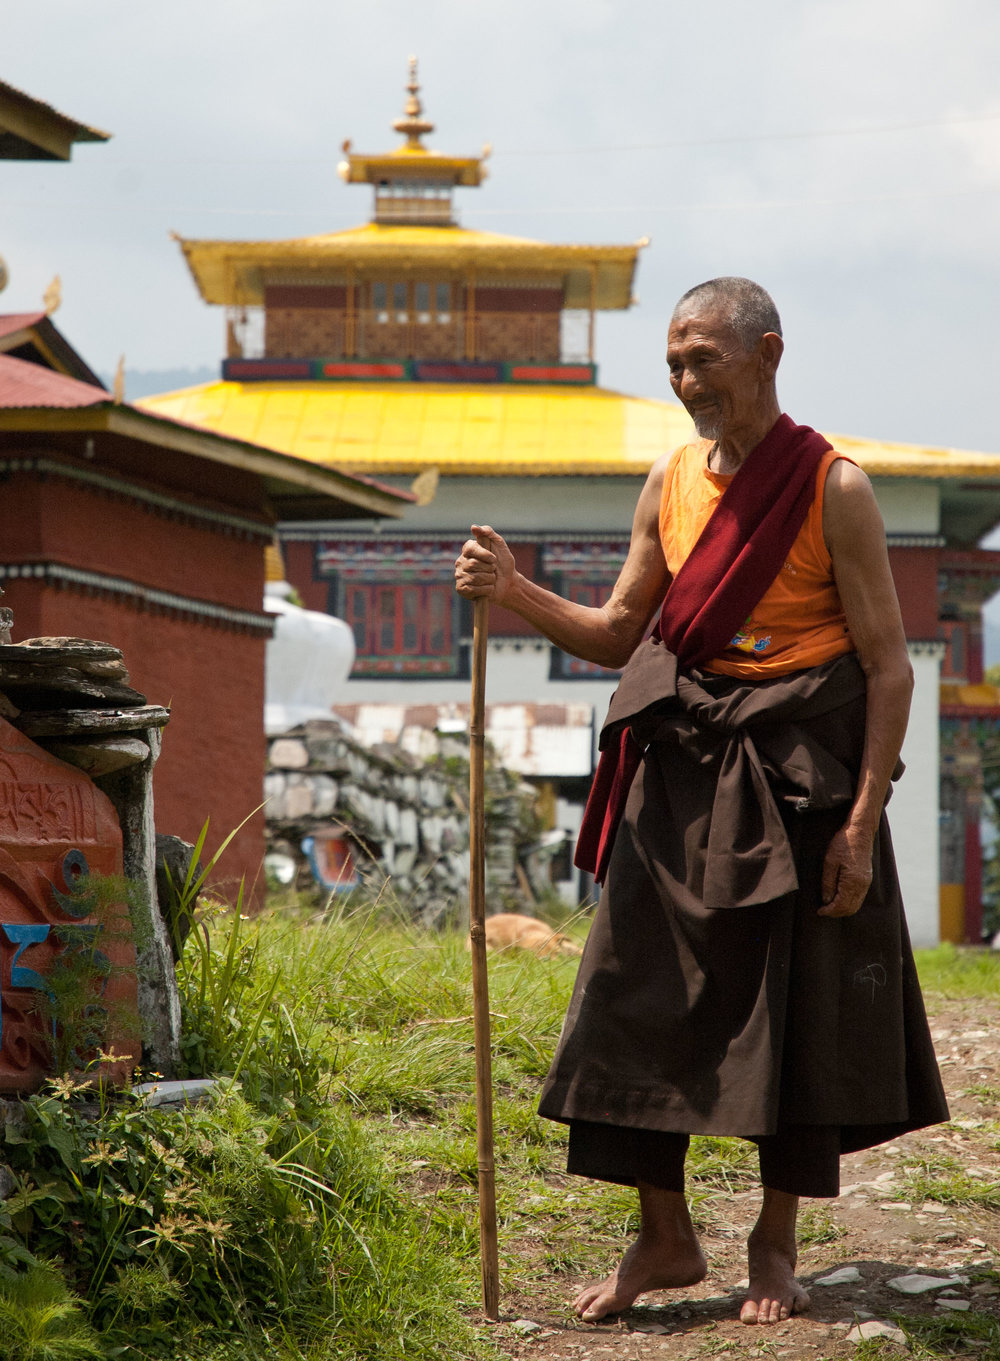 Buddhist monk at temple in Sikkim, India